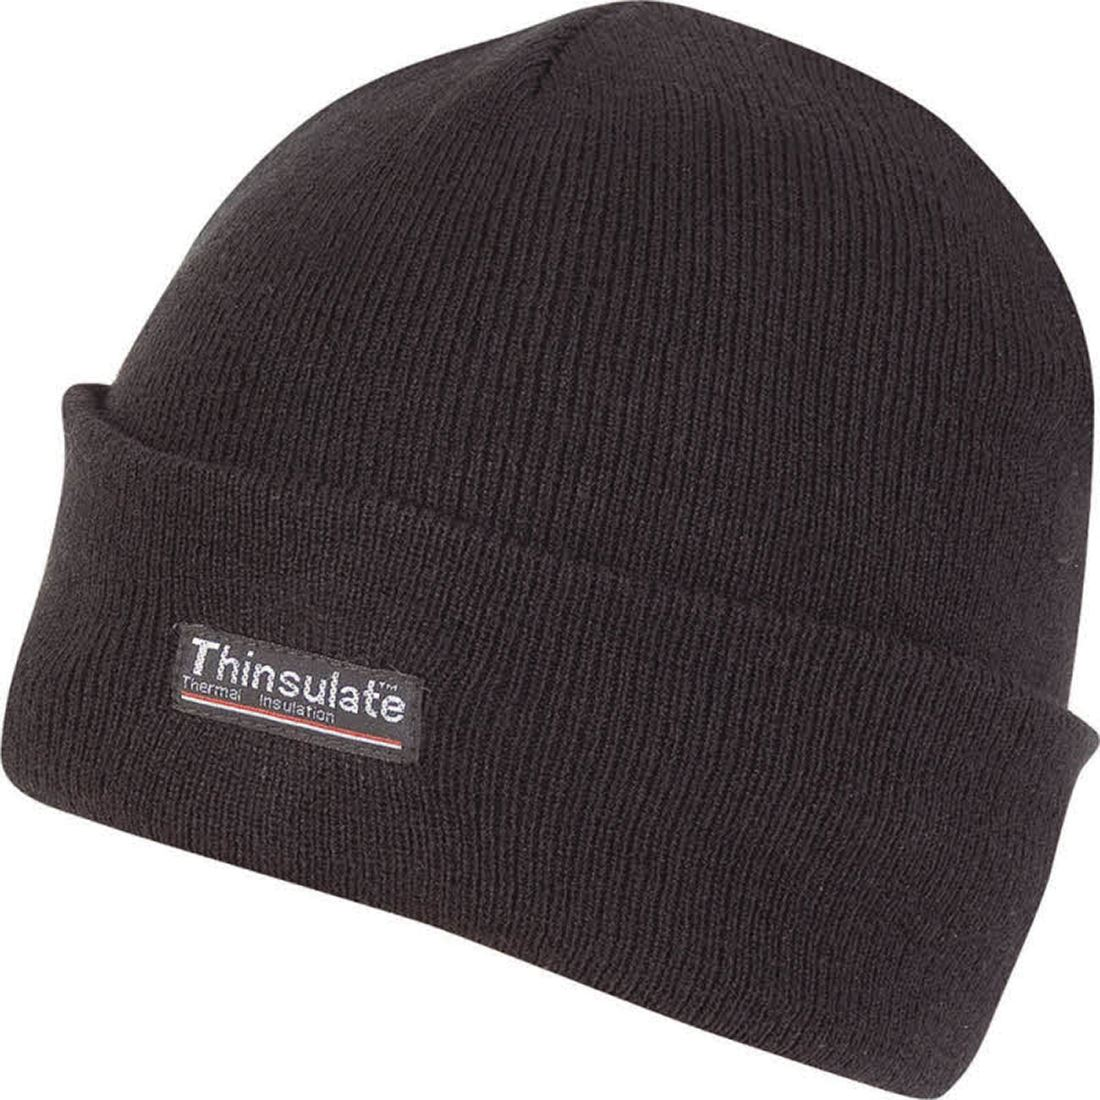 bb58baf9 JACK PYKE MENS THINSULATE THERMAL FLEECE LINING ARMY BEANIE BOB HAT ...